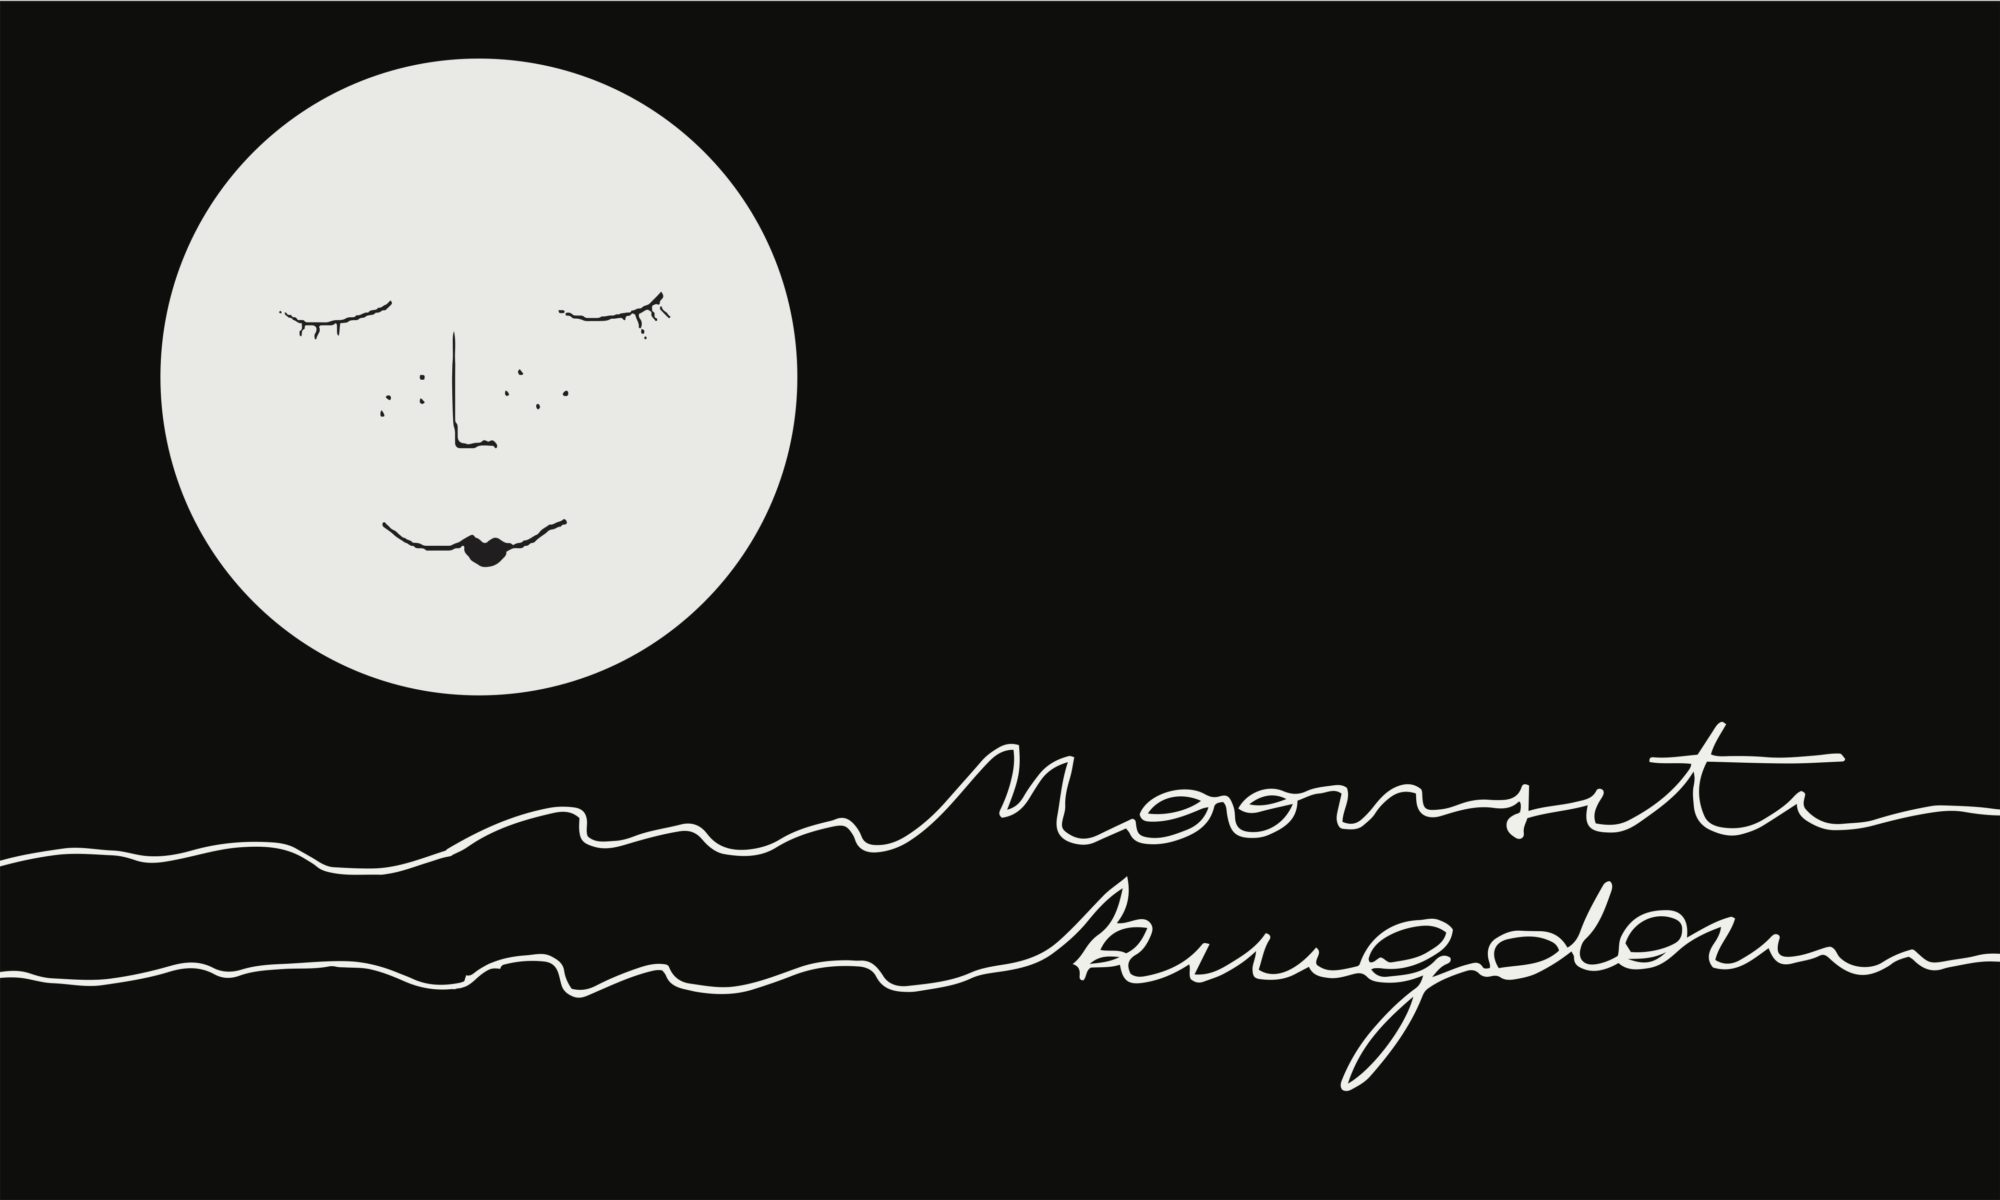 MOONSET KINGDOM